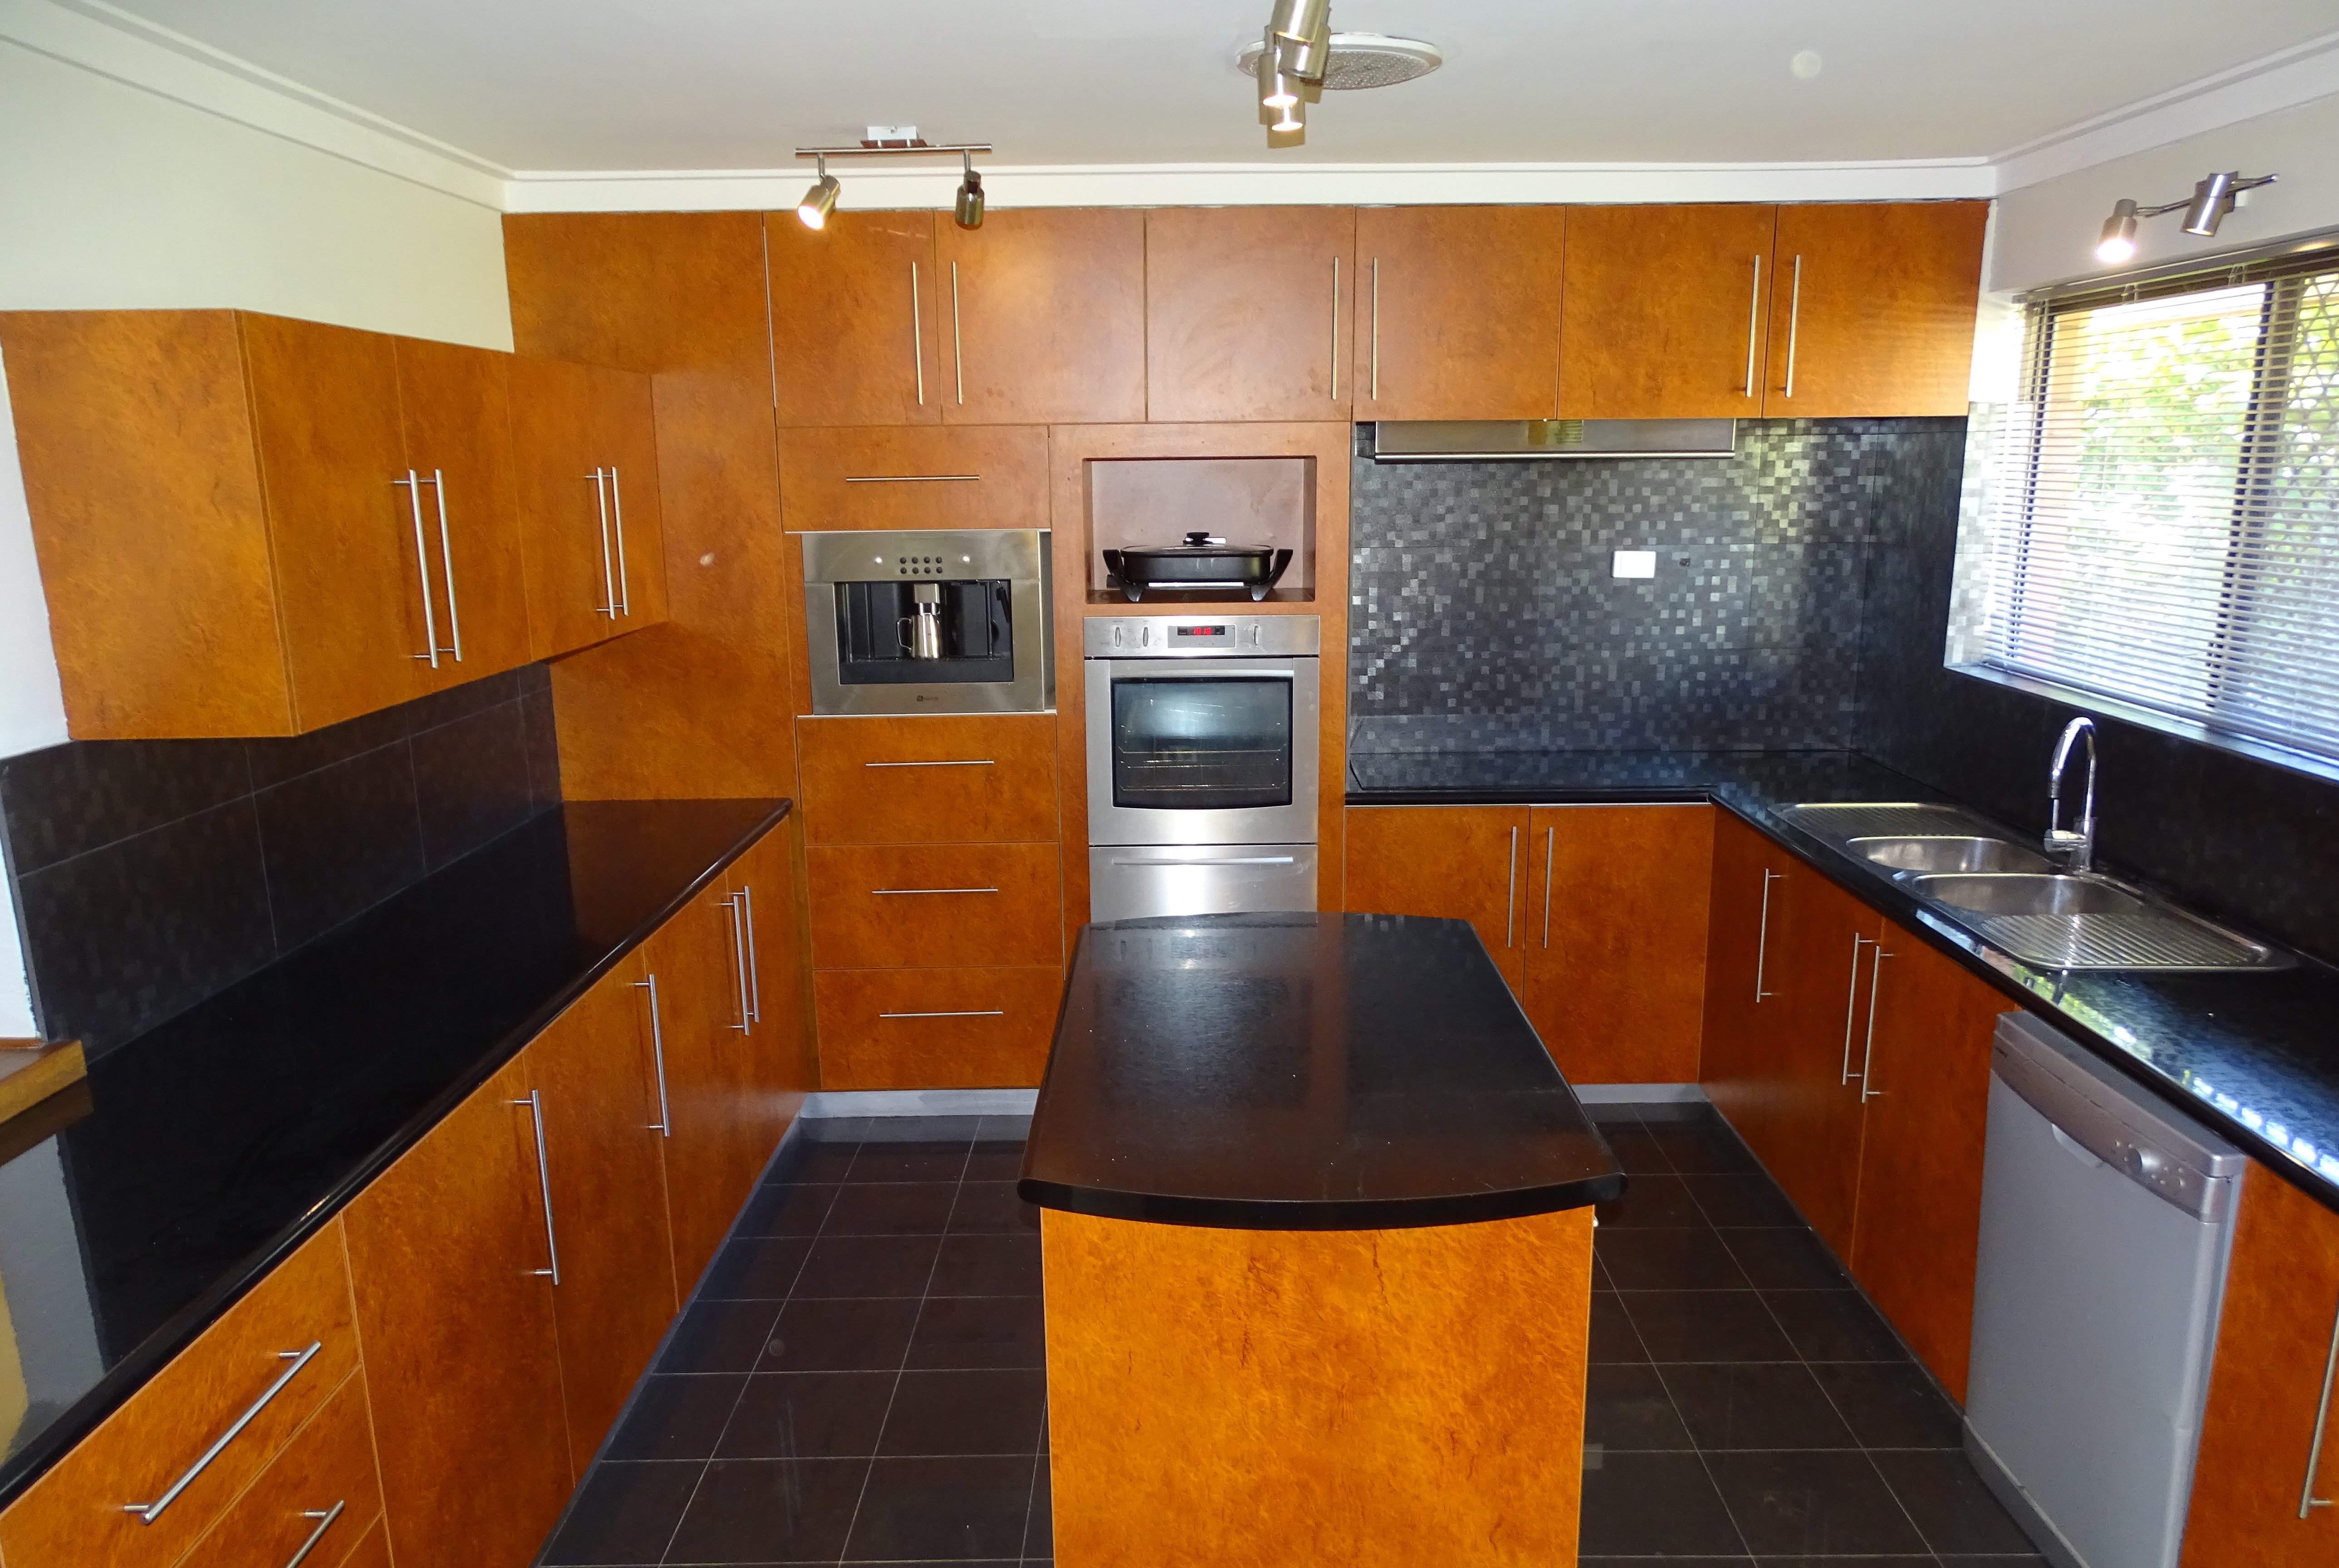 62-Wheatley-Drive-Bull-Creek-for-rent-888-Real-Estate-Group-WA-Kitchen